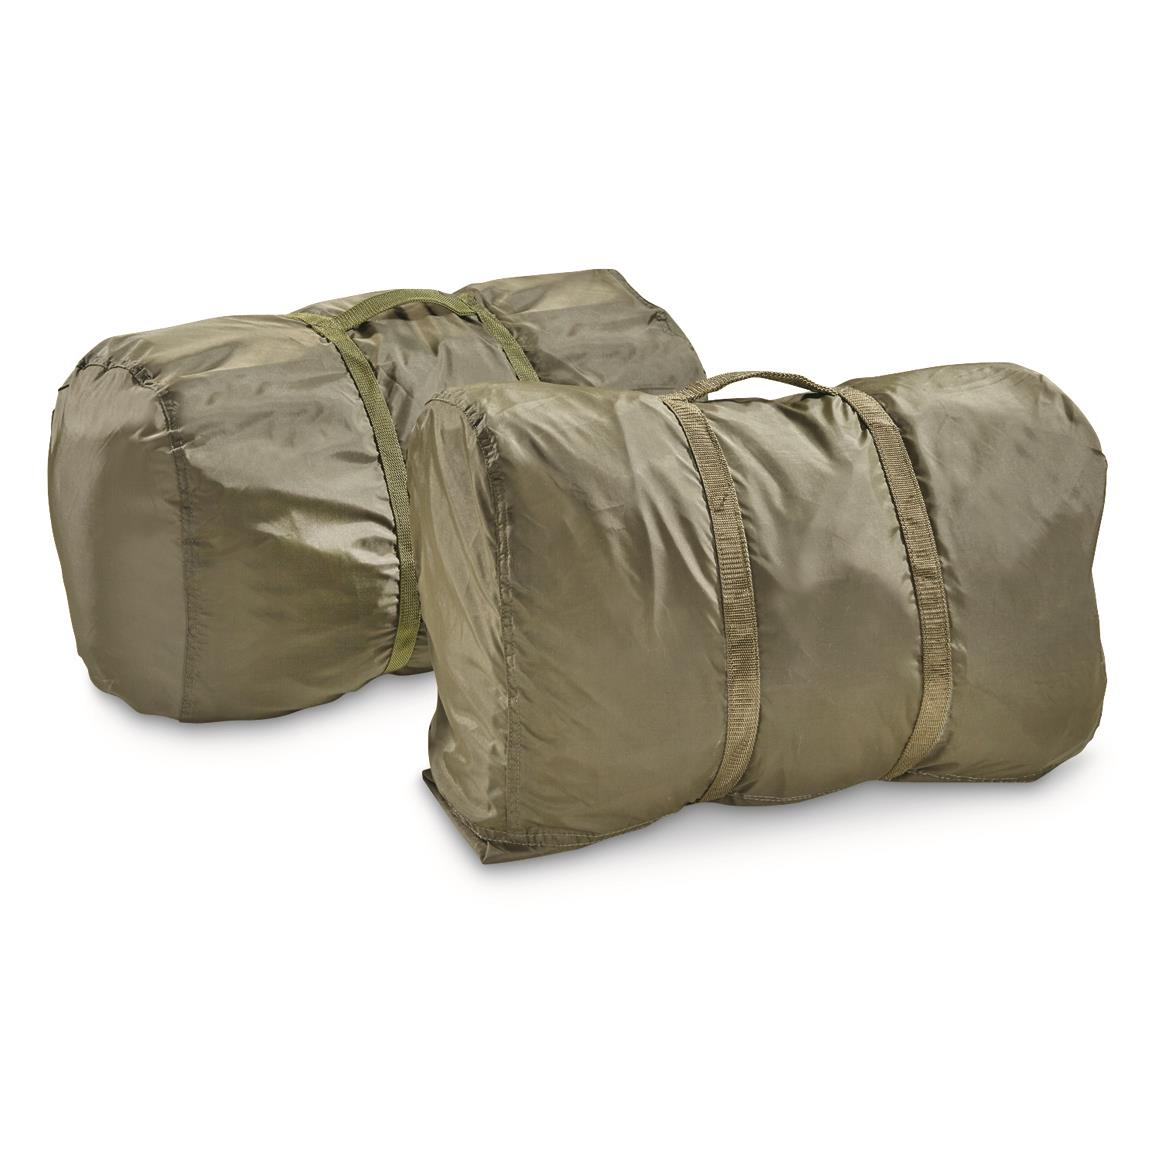 Italian Military Surplus Bivy Covers, 2 Pack, New